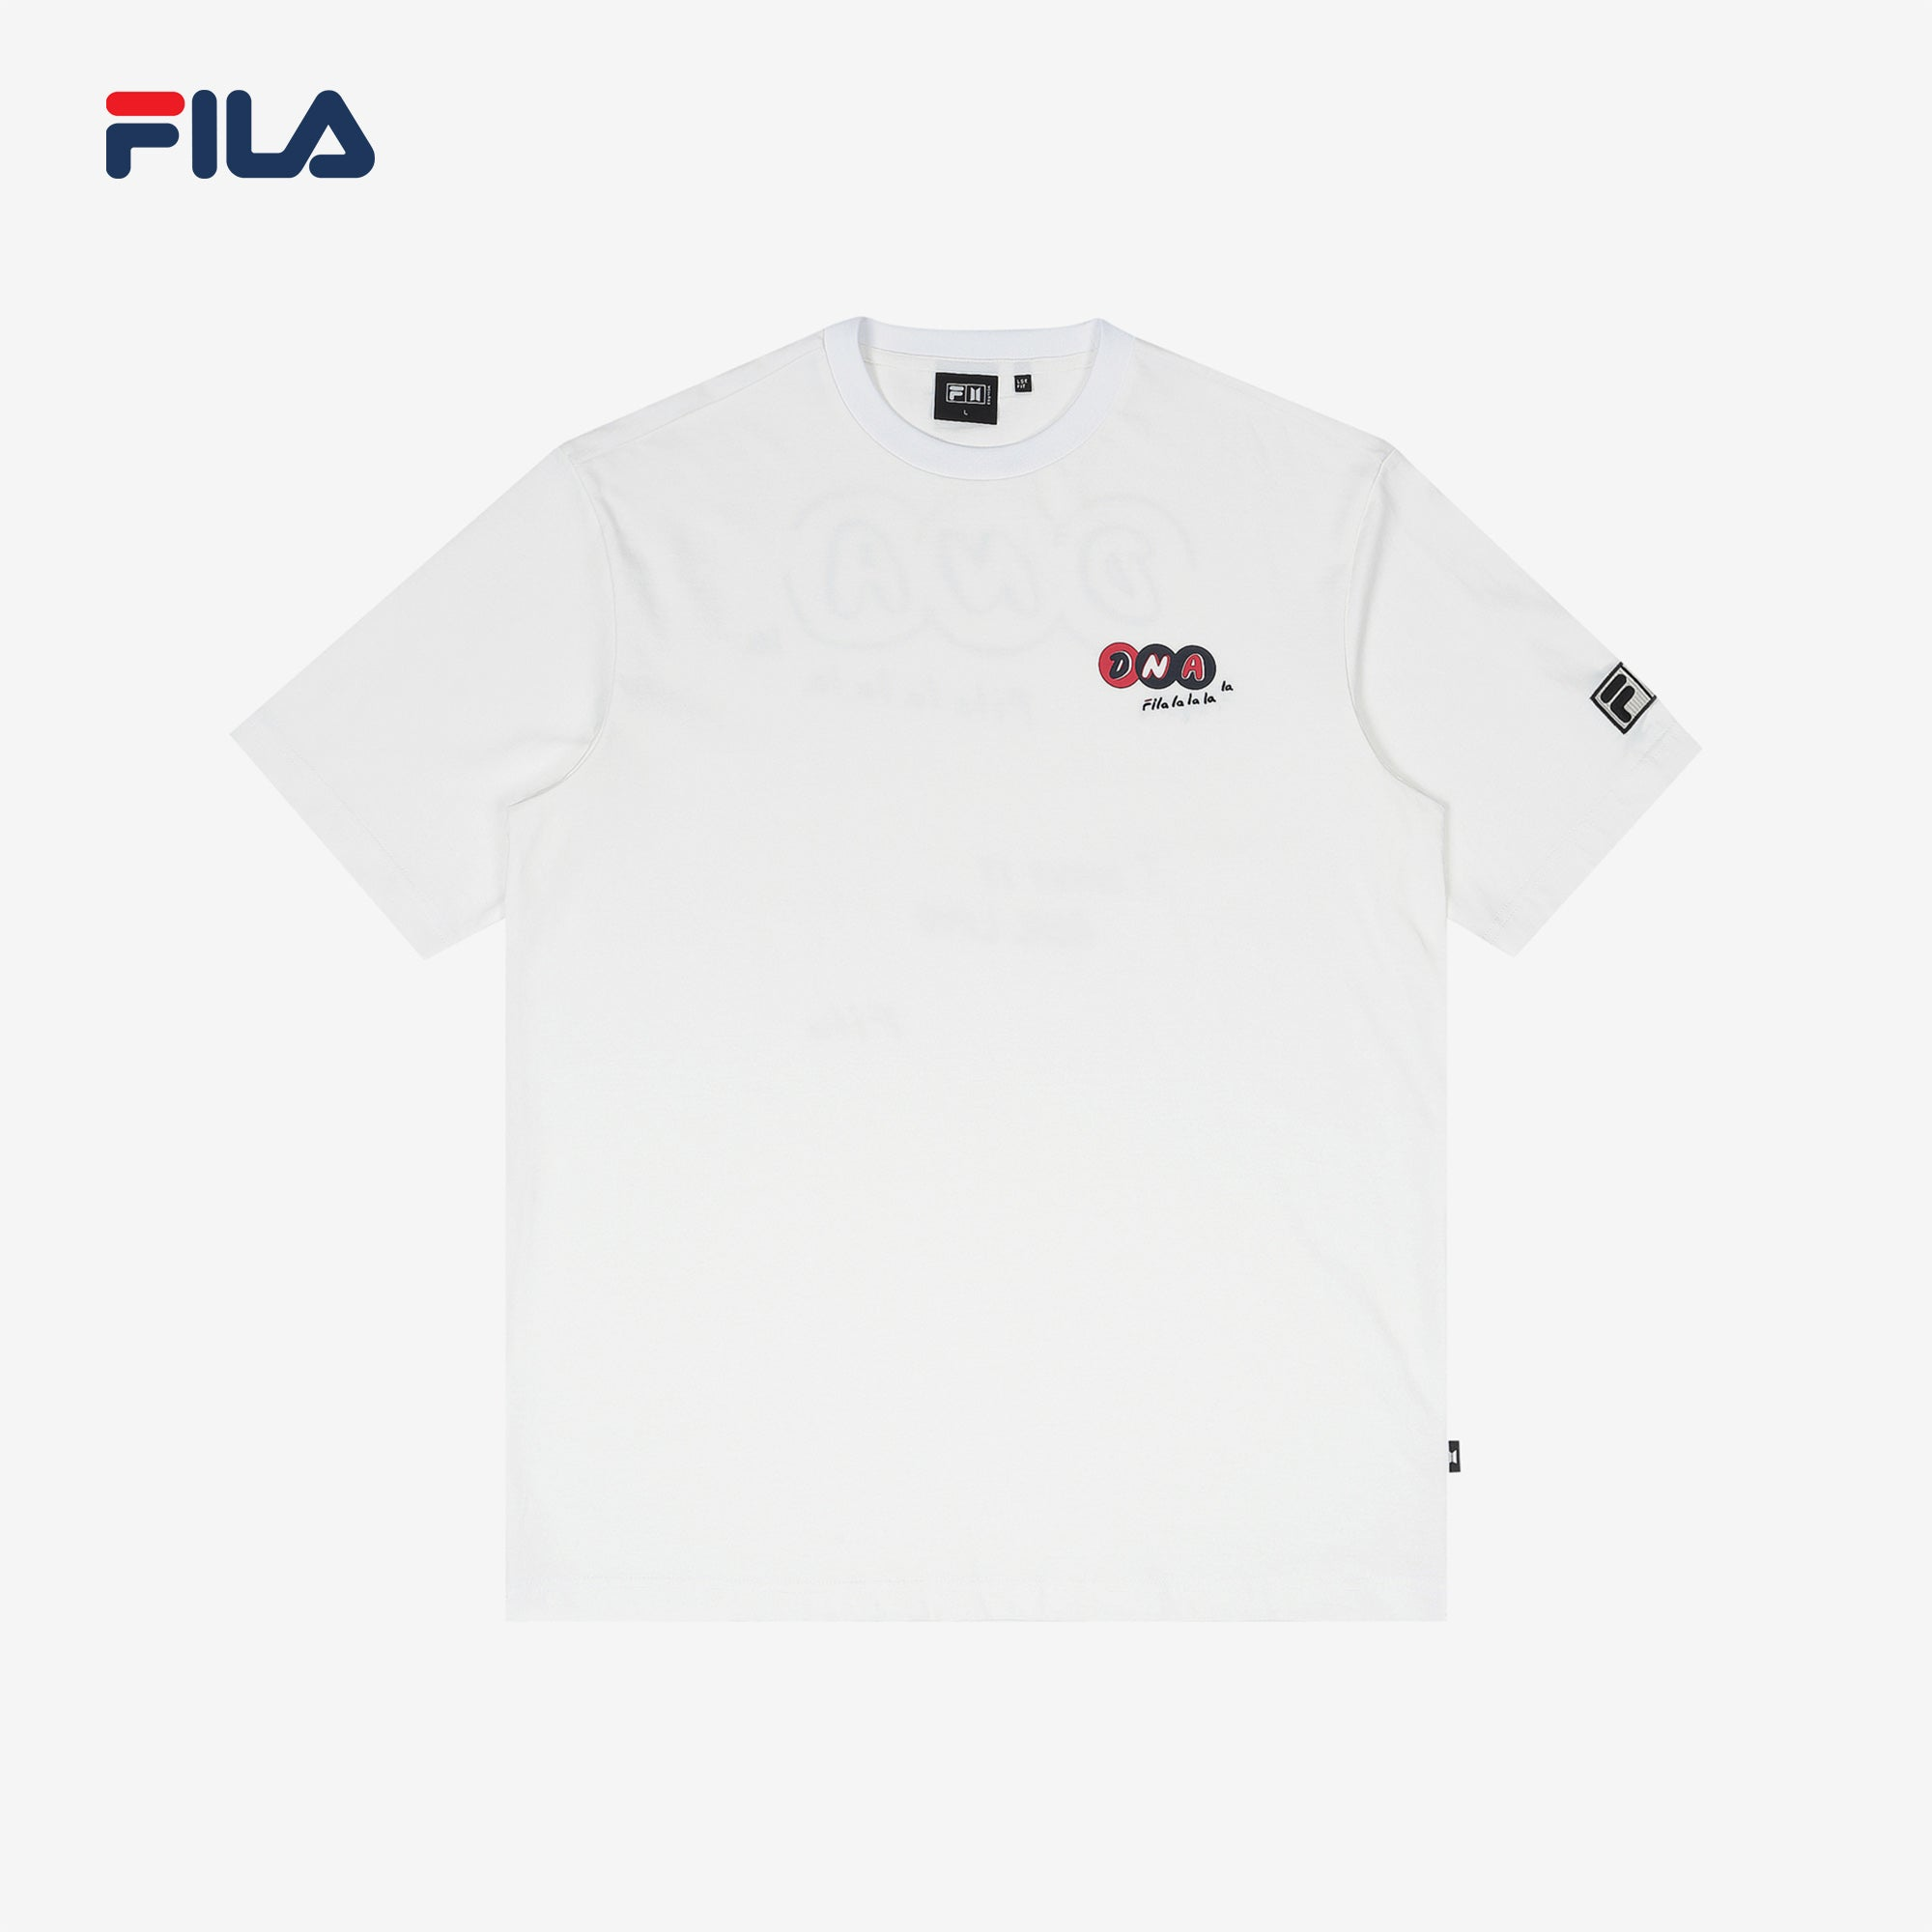 BTS FILA DNA GRAPHIC T SHIRT (White)